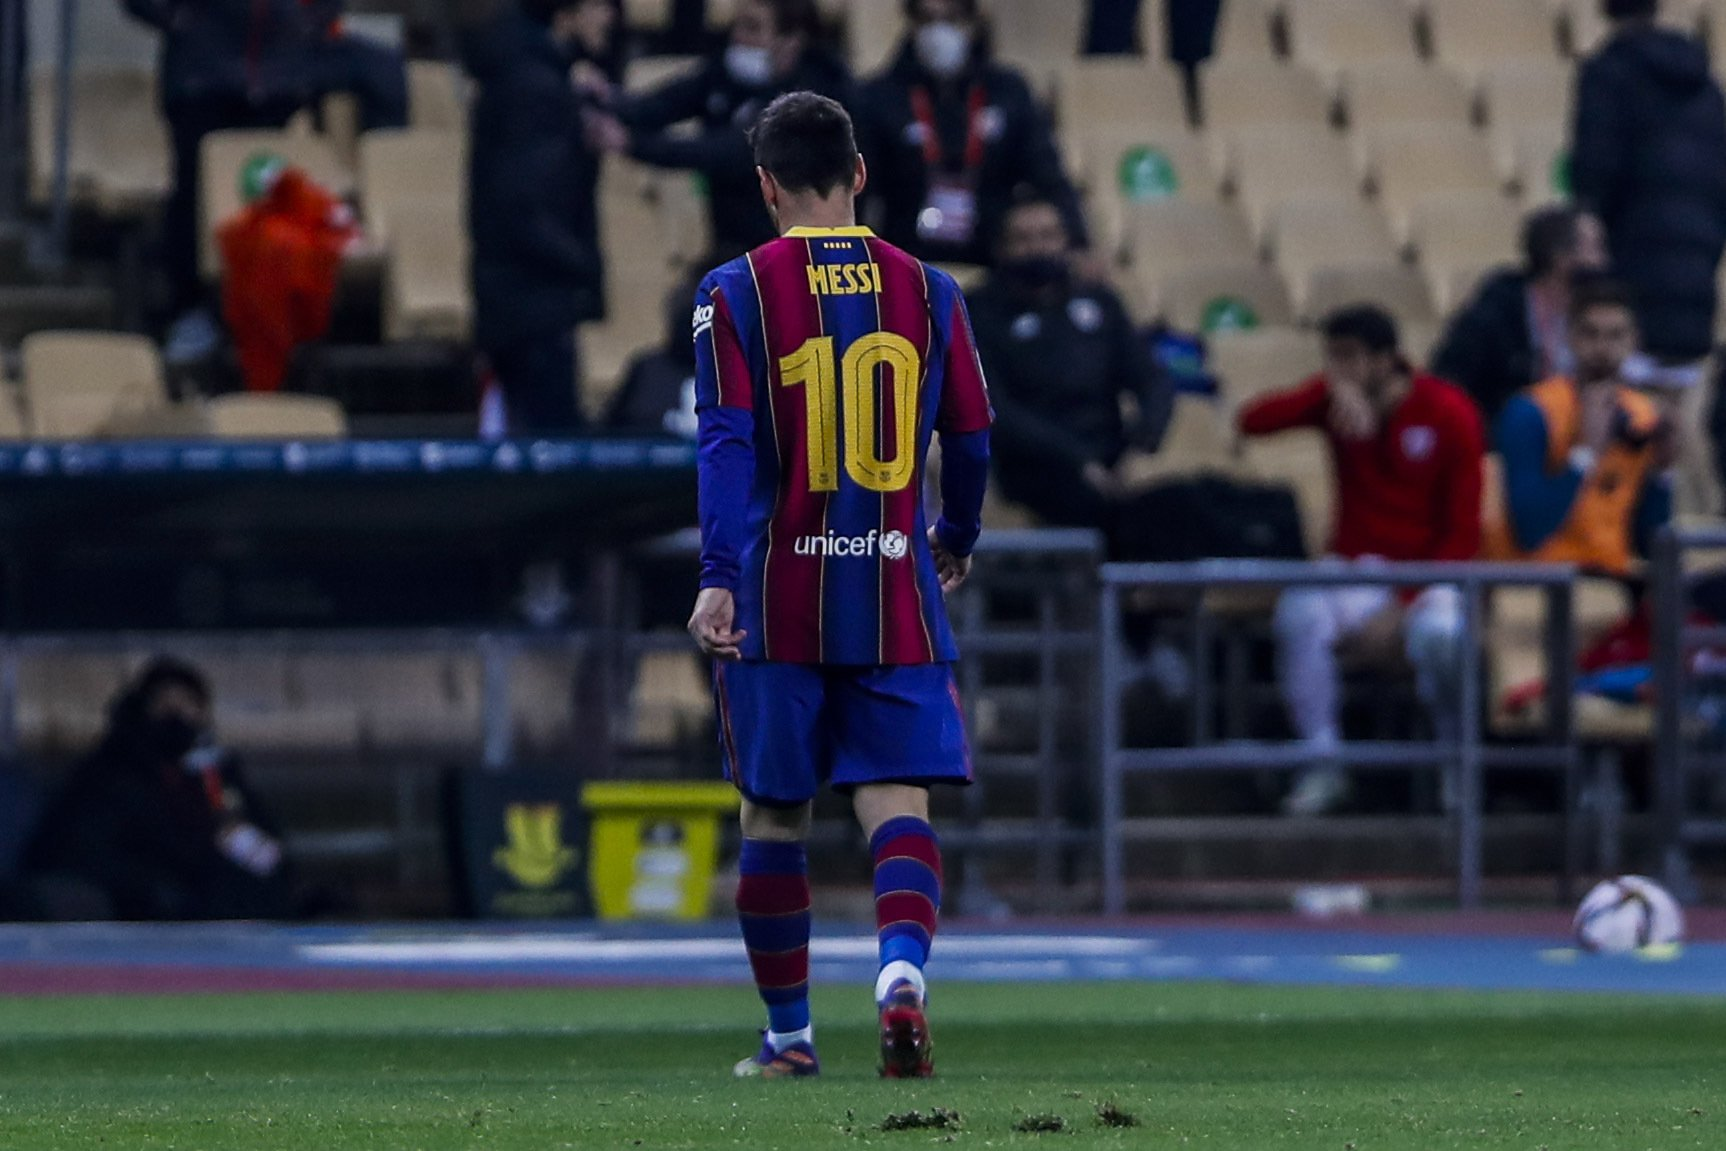 Messi sent off, Athletic beats Barca in Spanish Super Cup